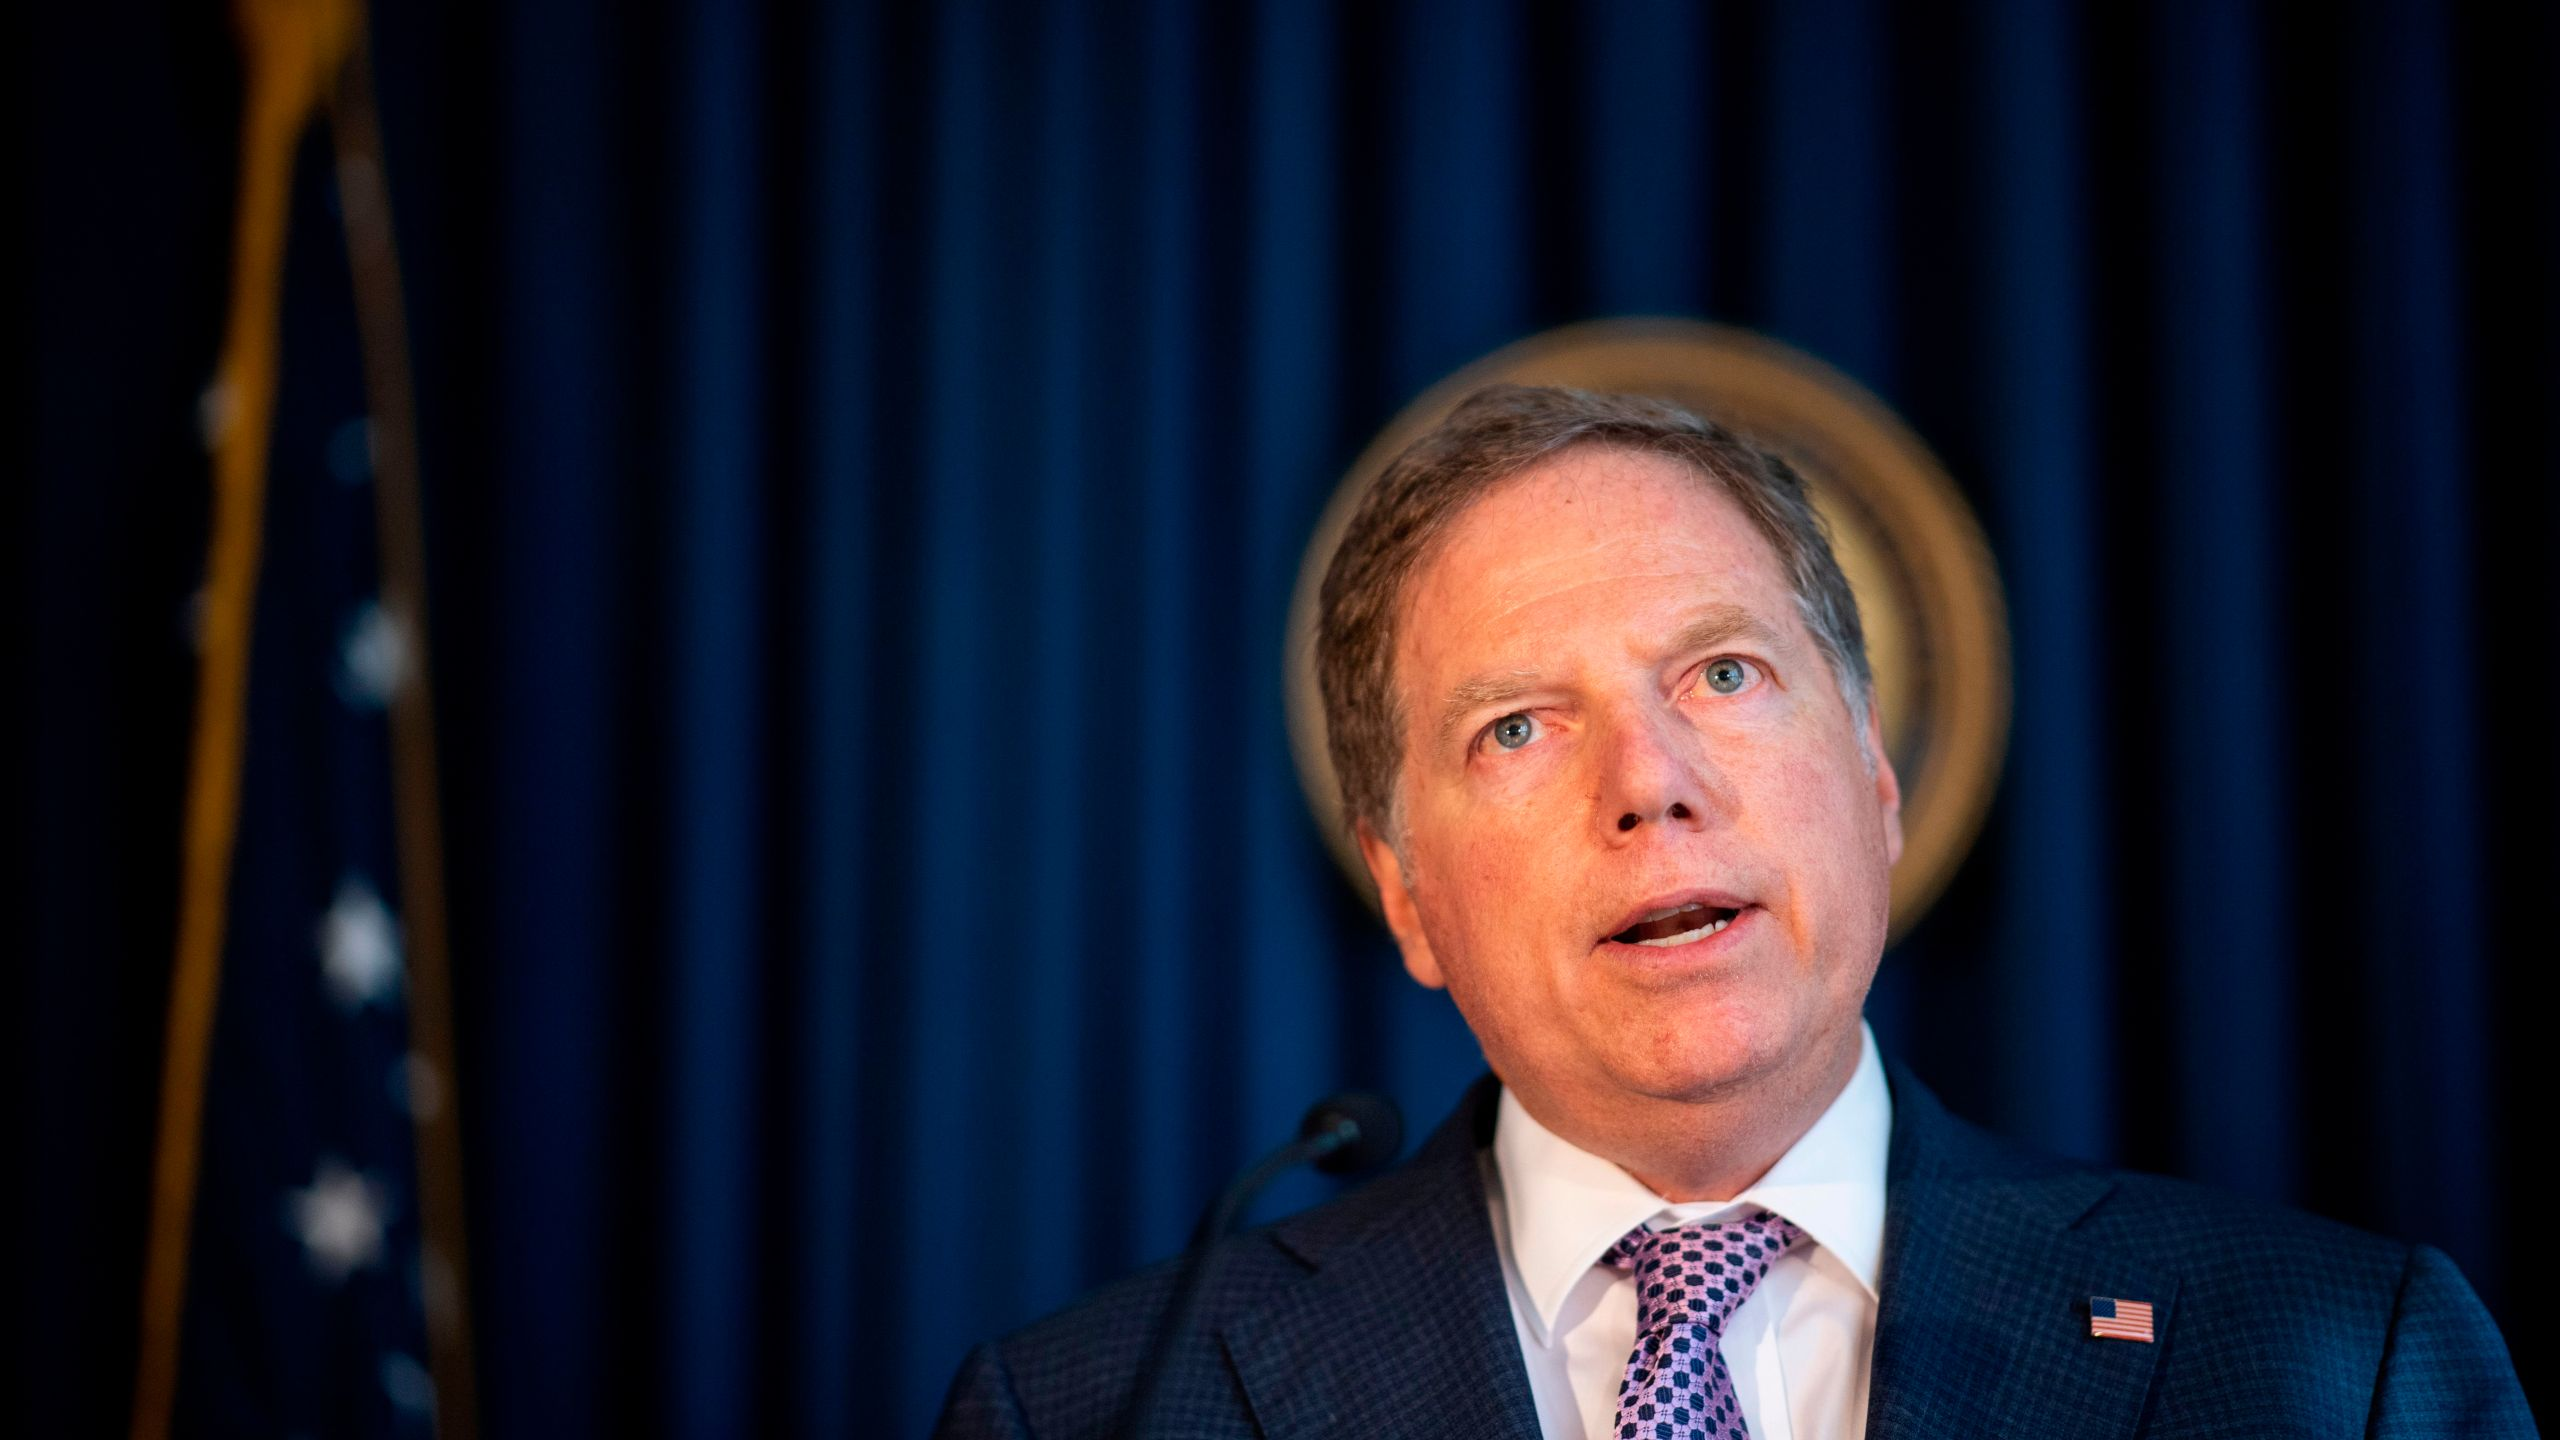 U.S. Attorney for the Southern District of New York Geoffrey Berman speaks during a press conference on Oct. 10, 2019 in New York City. (JOHANNES EISELE/AFP via Getty Images)